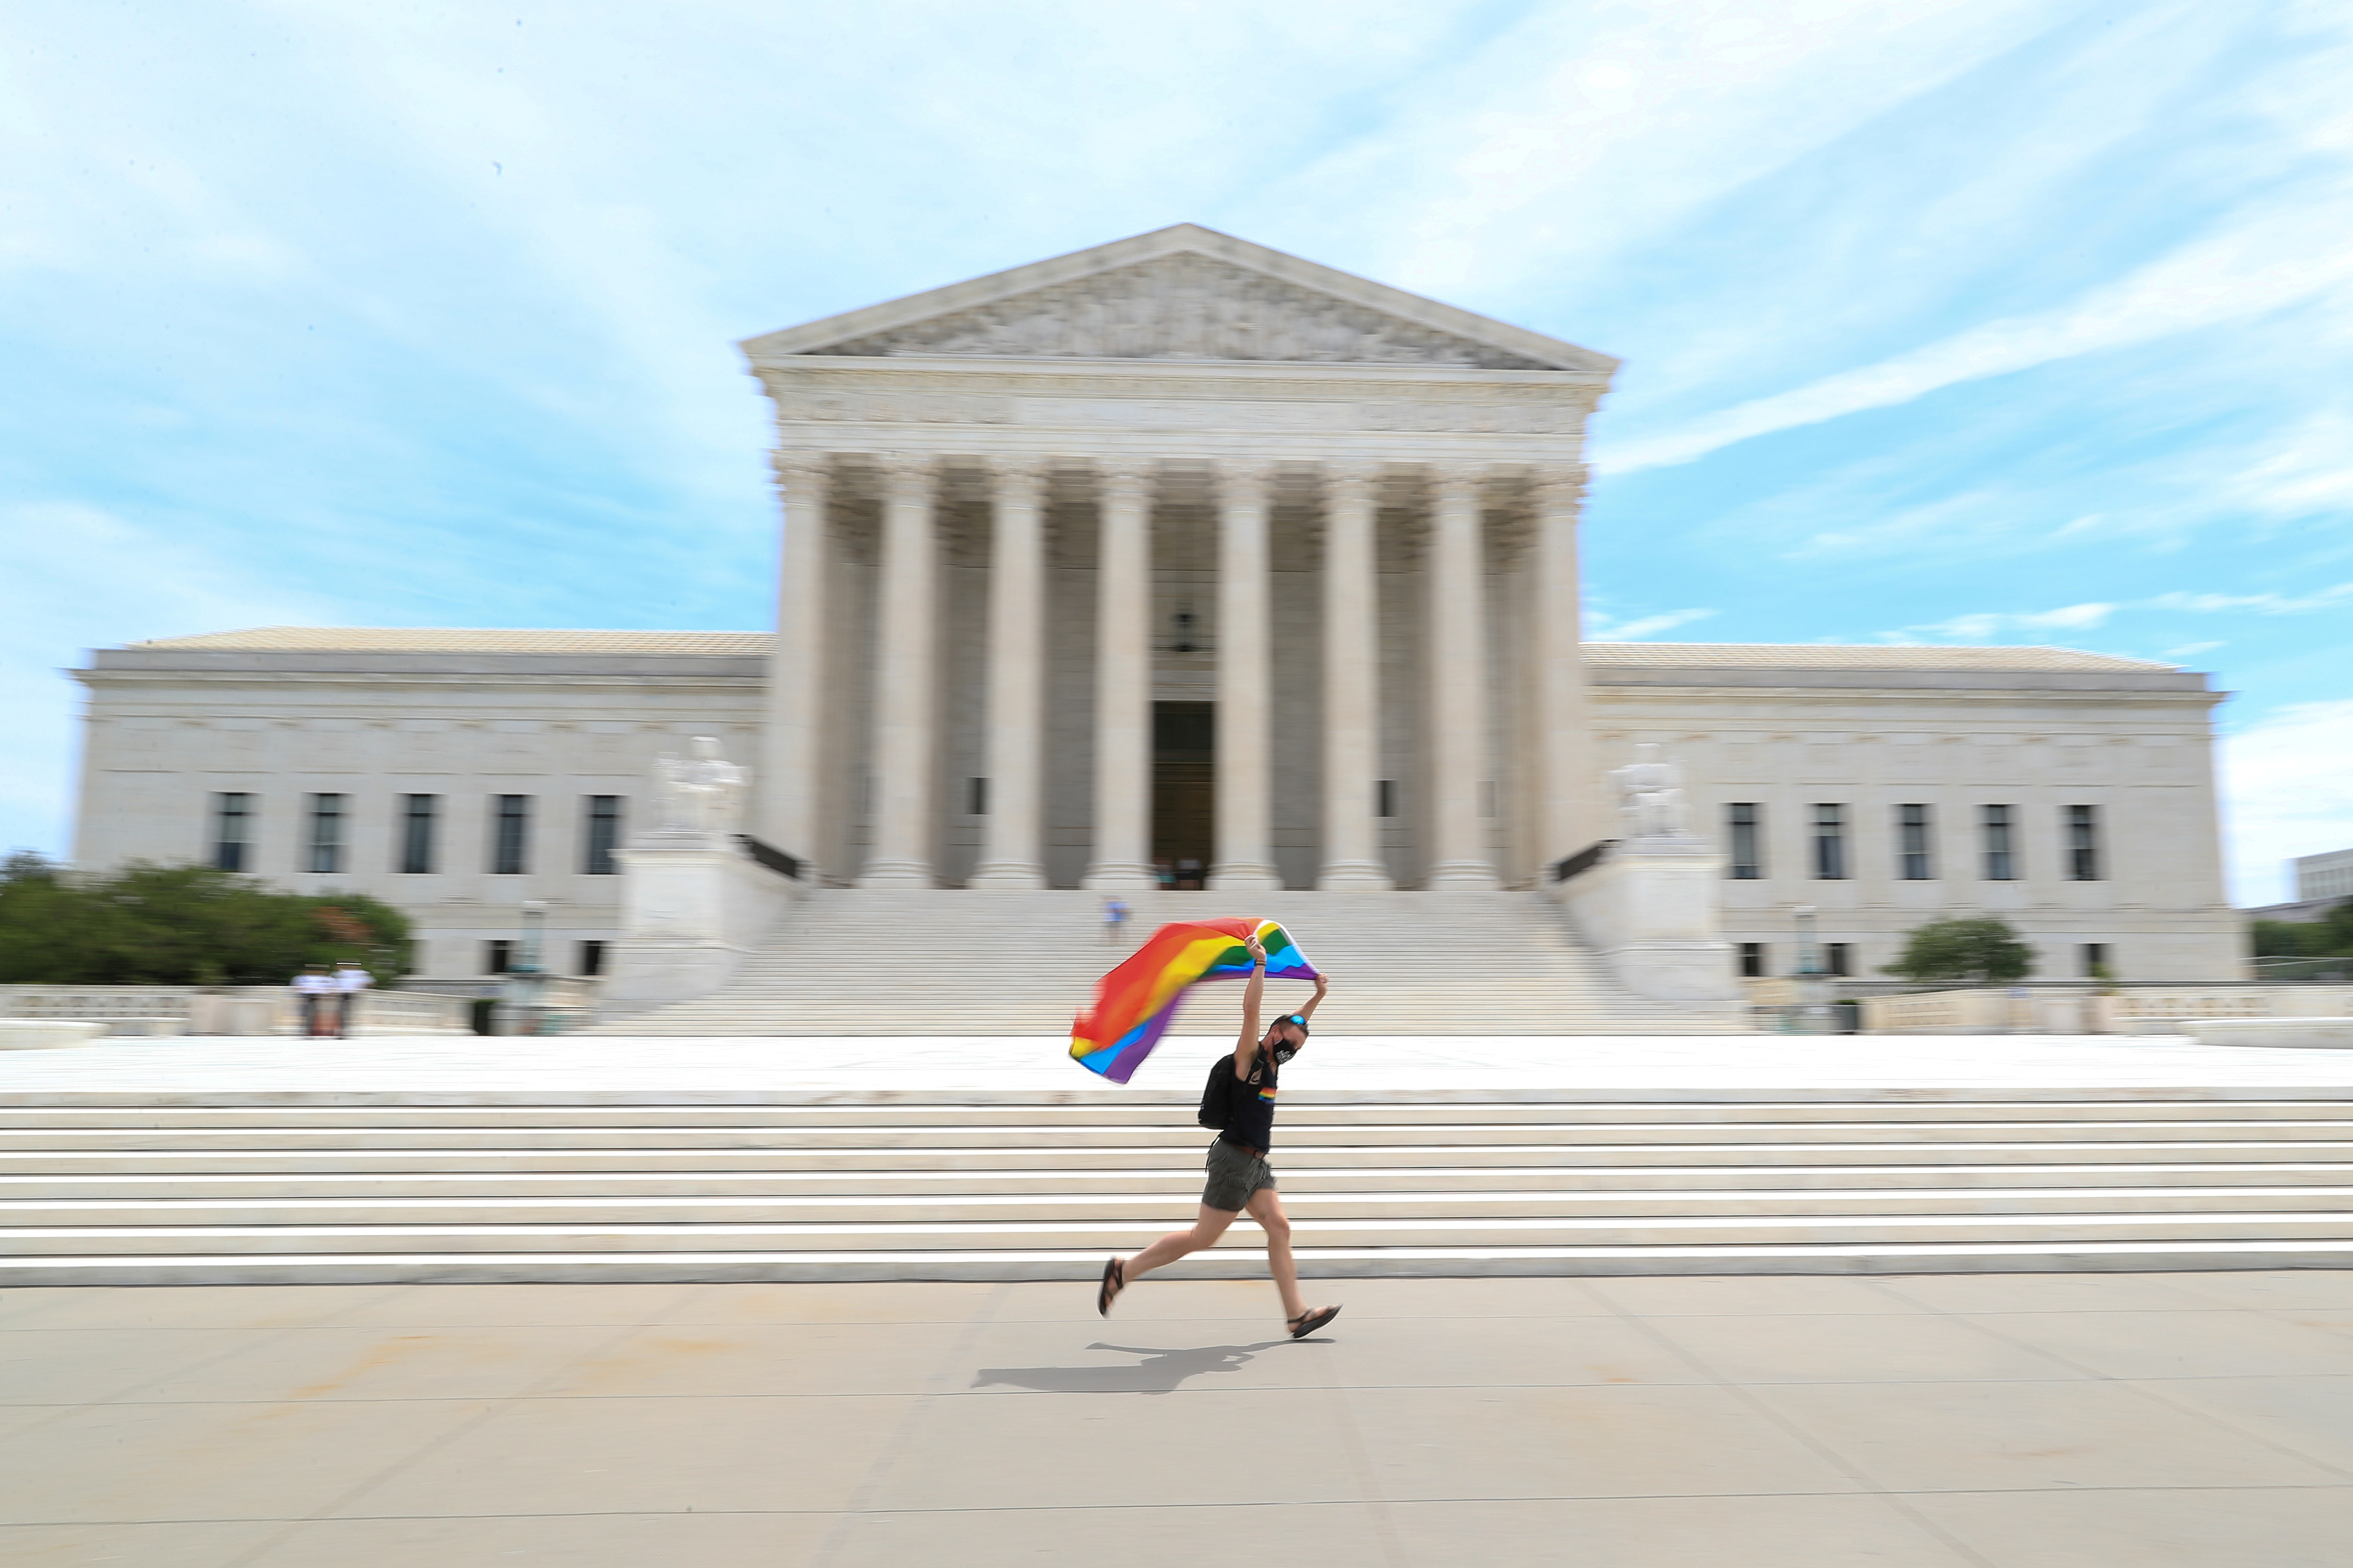 Joseph Fons holding a Pride Flag, runs in front of the US Supreme Court building after the court ruled that a federal law banning workplace discrimination also covers sexual orientation, in Washington, DC, US, June 15, 2020.  Photo: Reuters